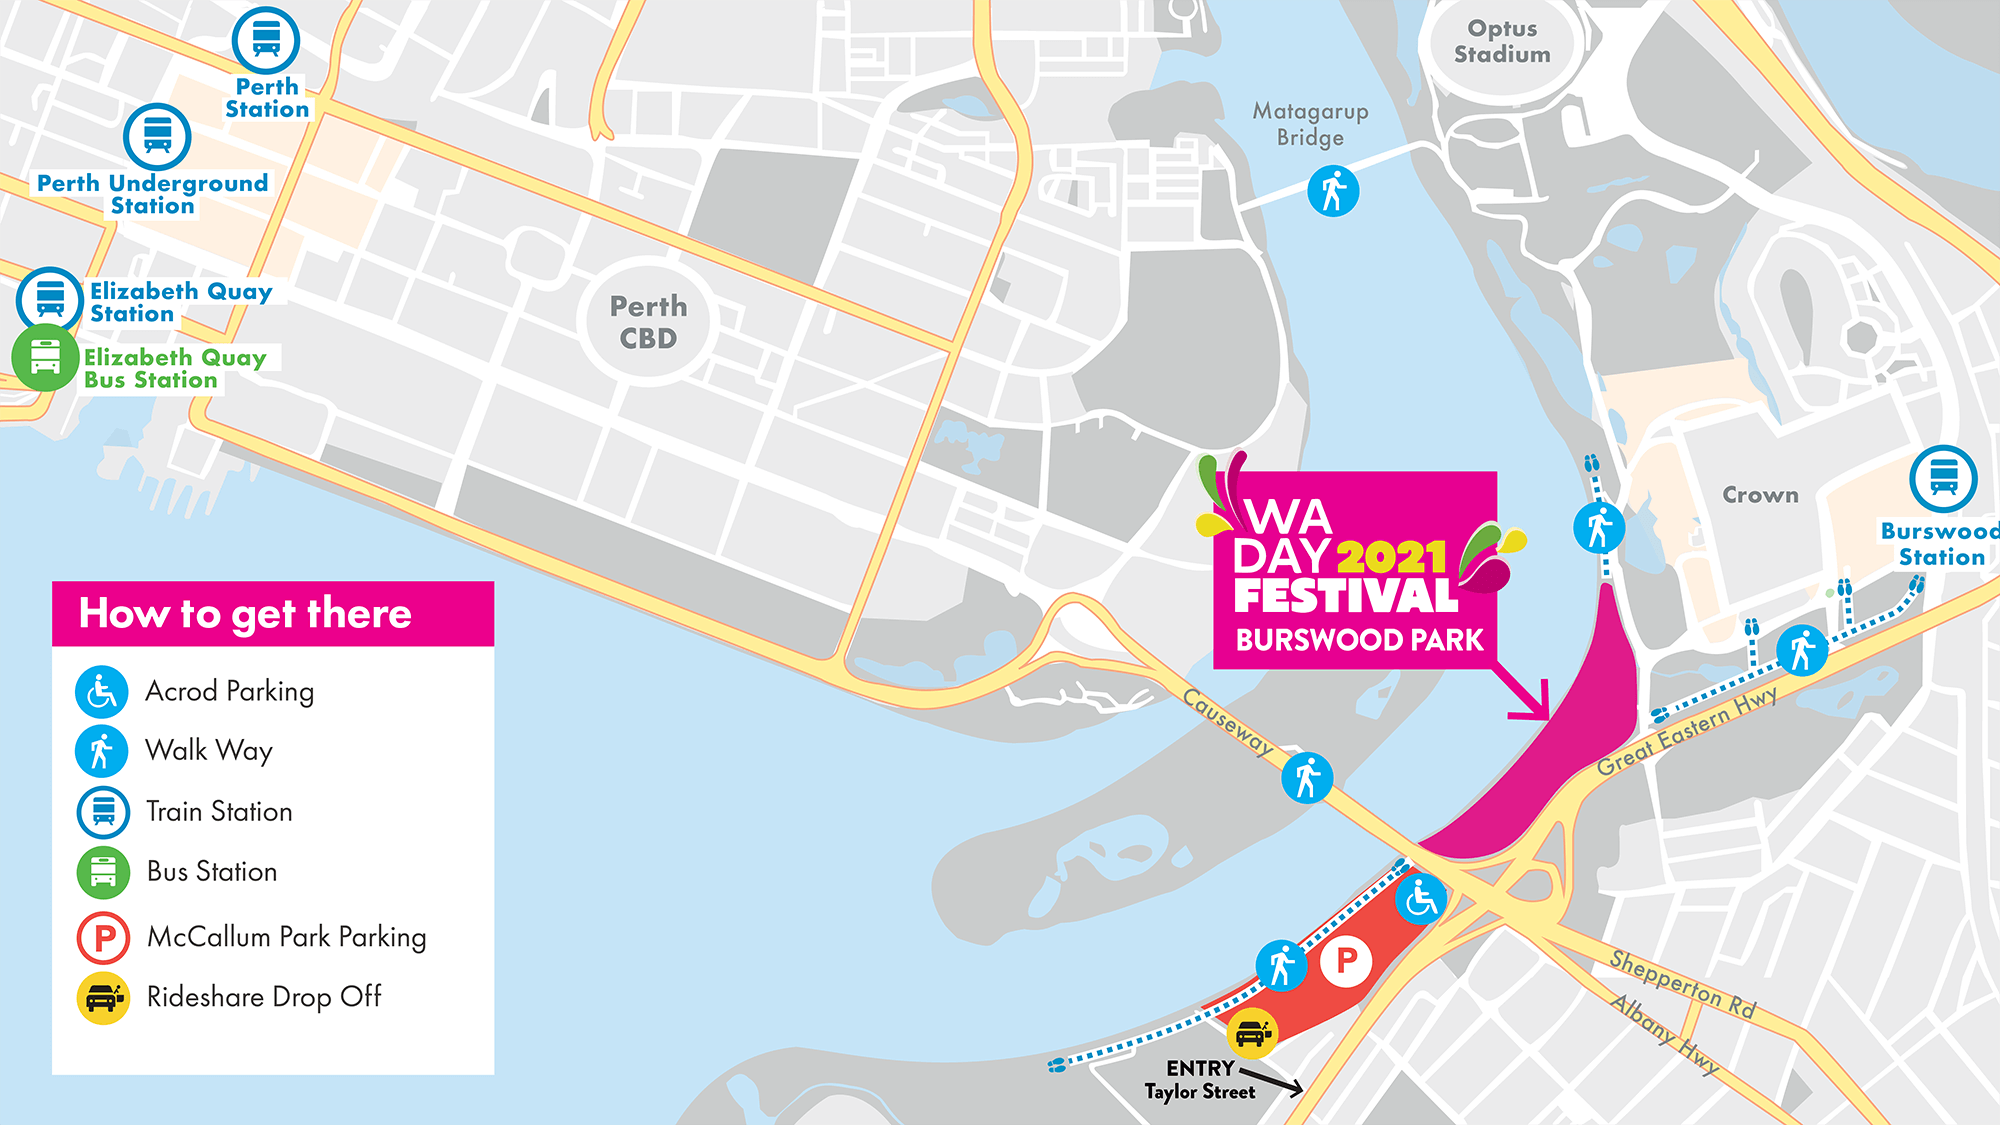 WA Day Festival 2021 - How to get there